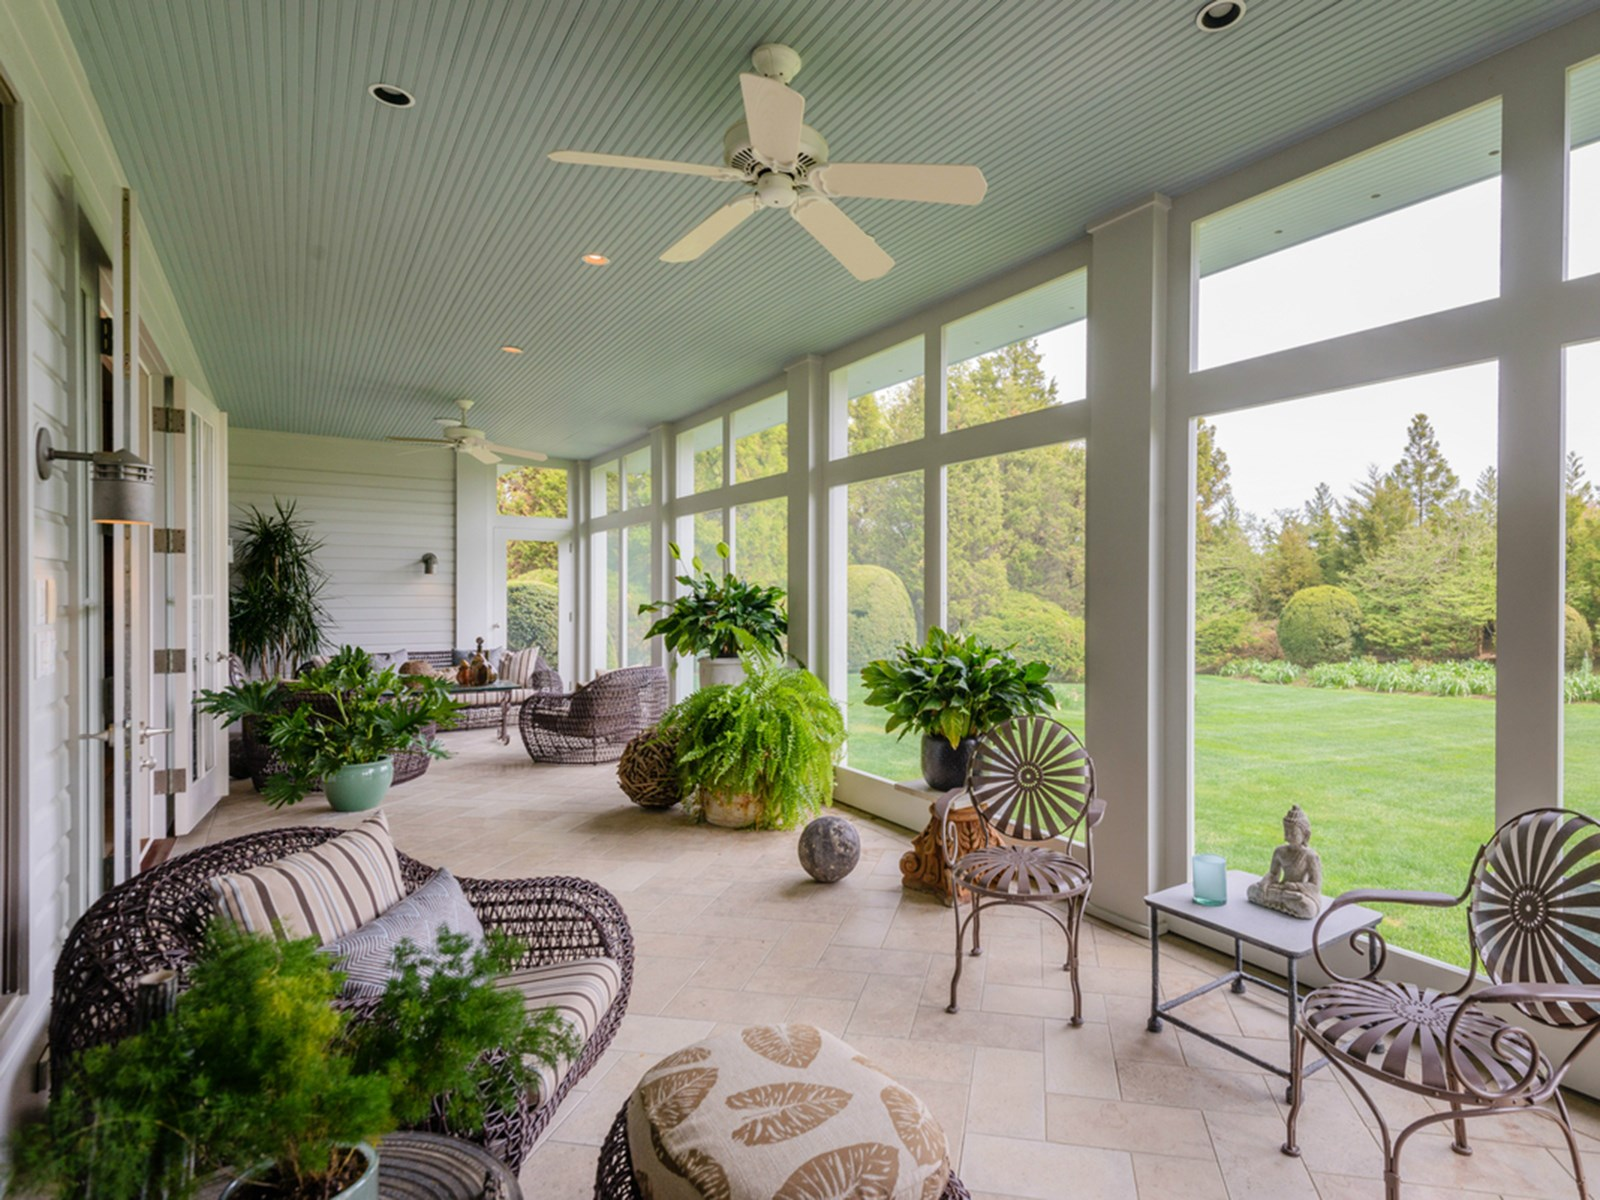 NEW KDHamptons Featured Property: A Fantastic Further Lane ... on Enclosed Back Deck Ideas id=65559